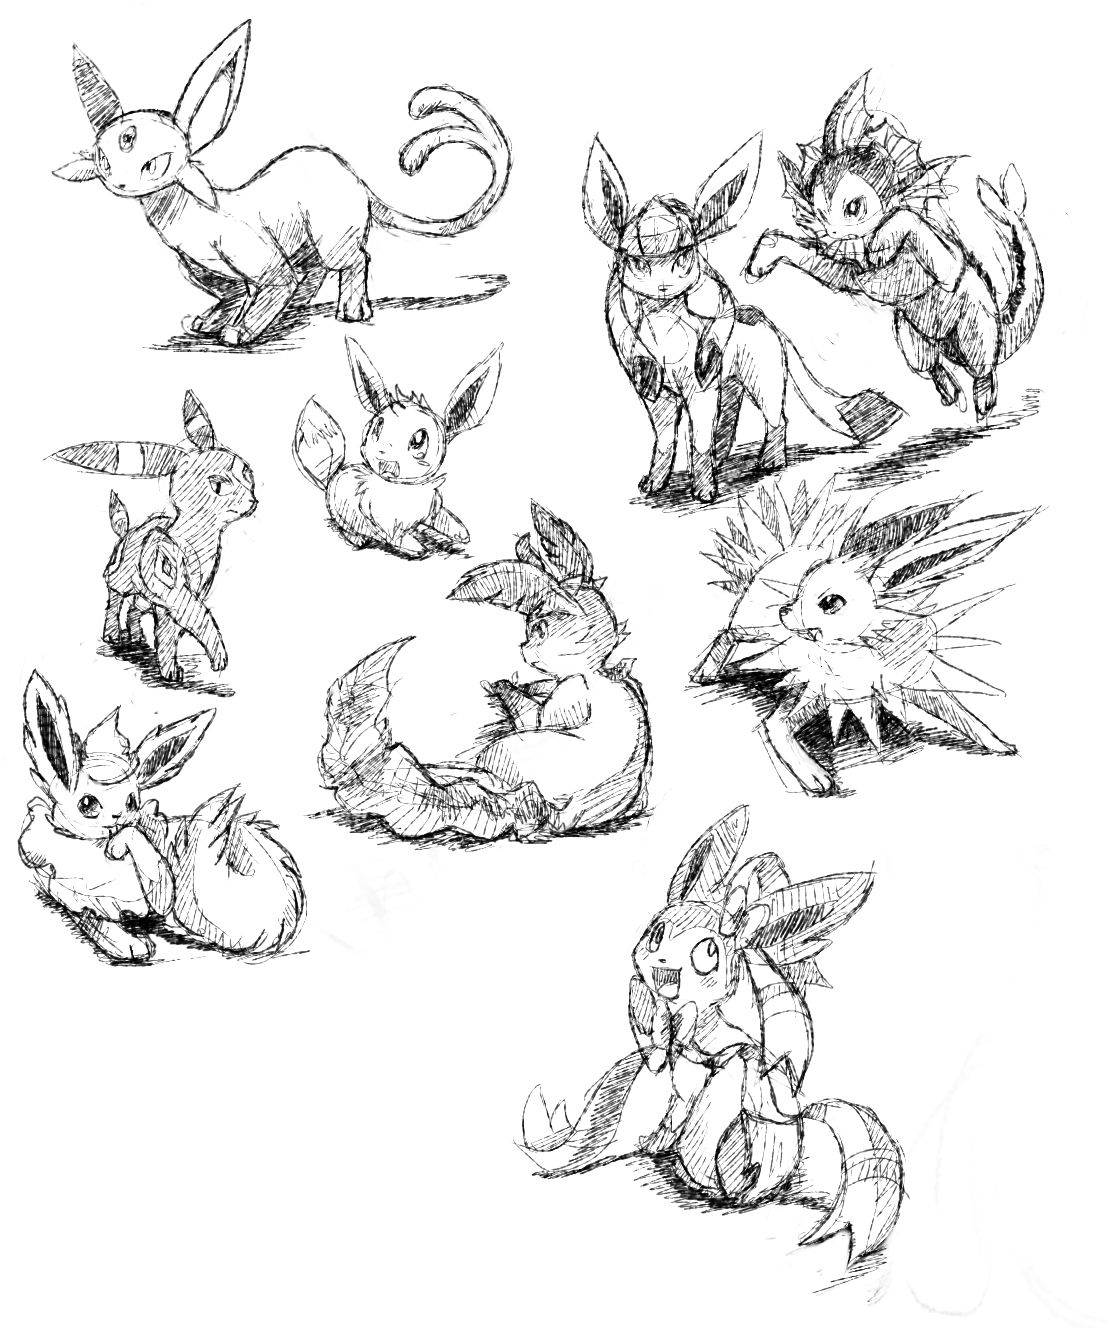 coloriage pokemon evolution d evoli | Pokémon | Pinterest